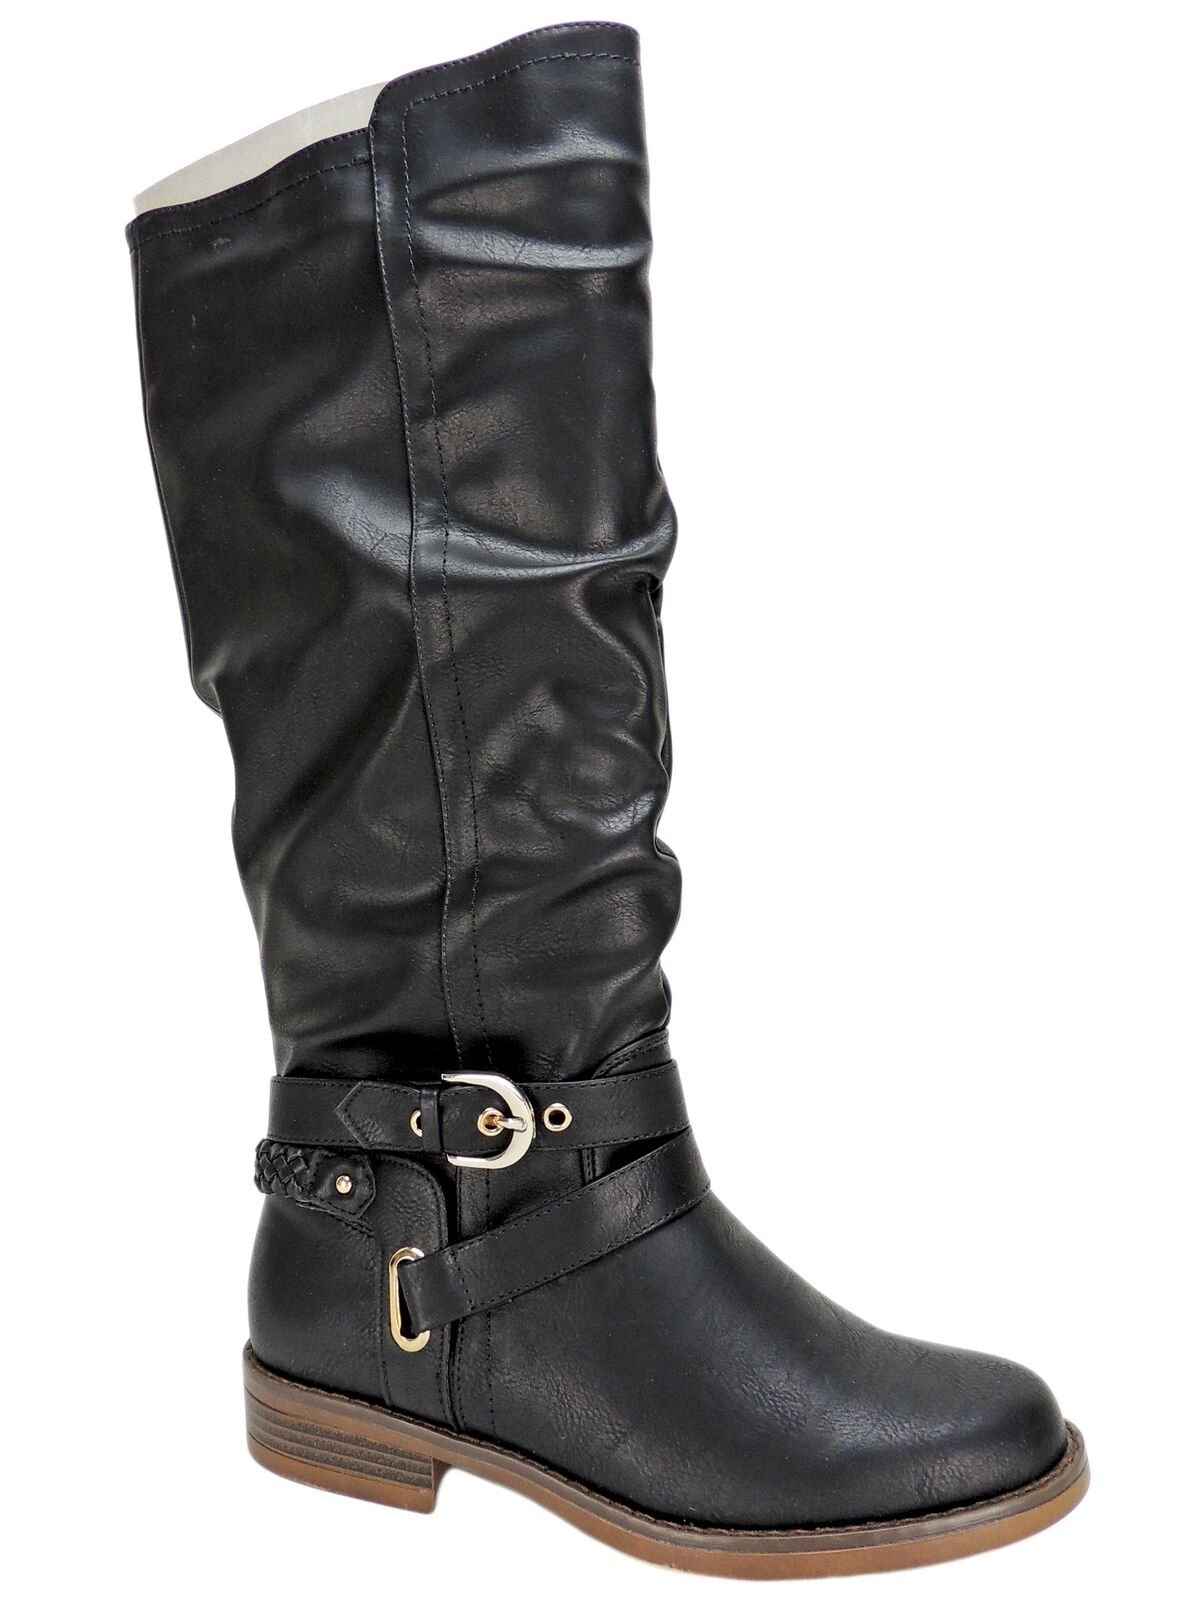 XOXO Women's Martin Riding Boots Black Size 7 M